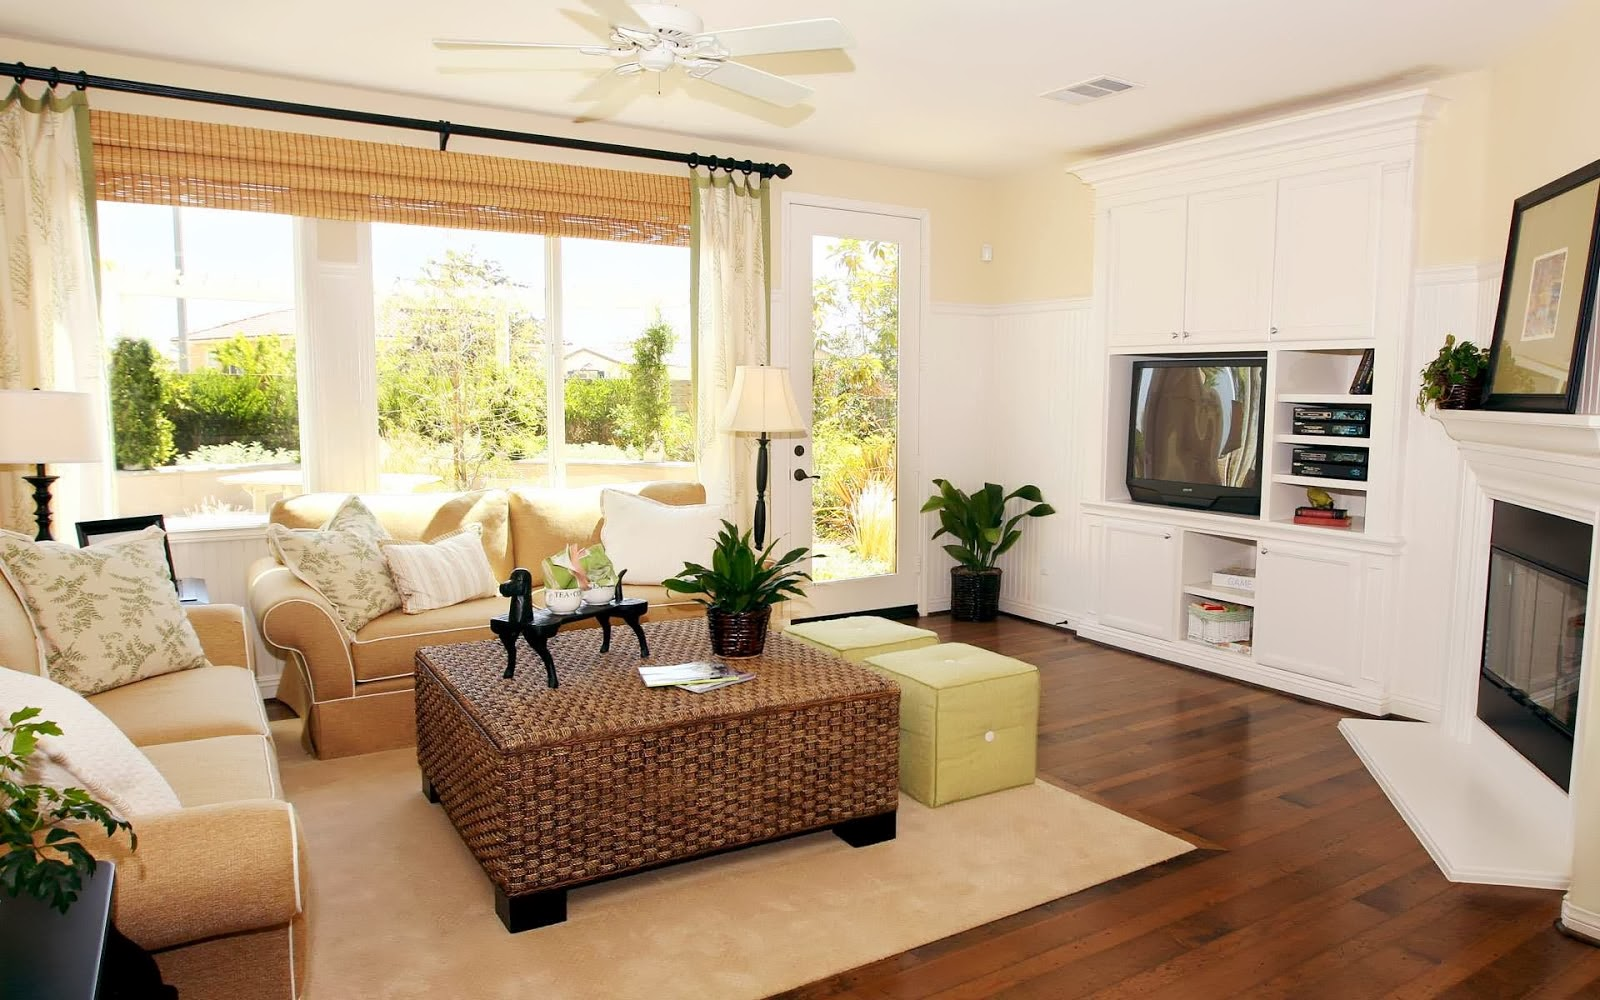 Interior design for living room for middle class in india